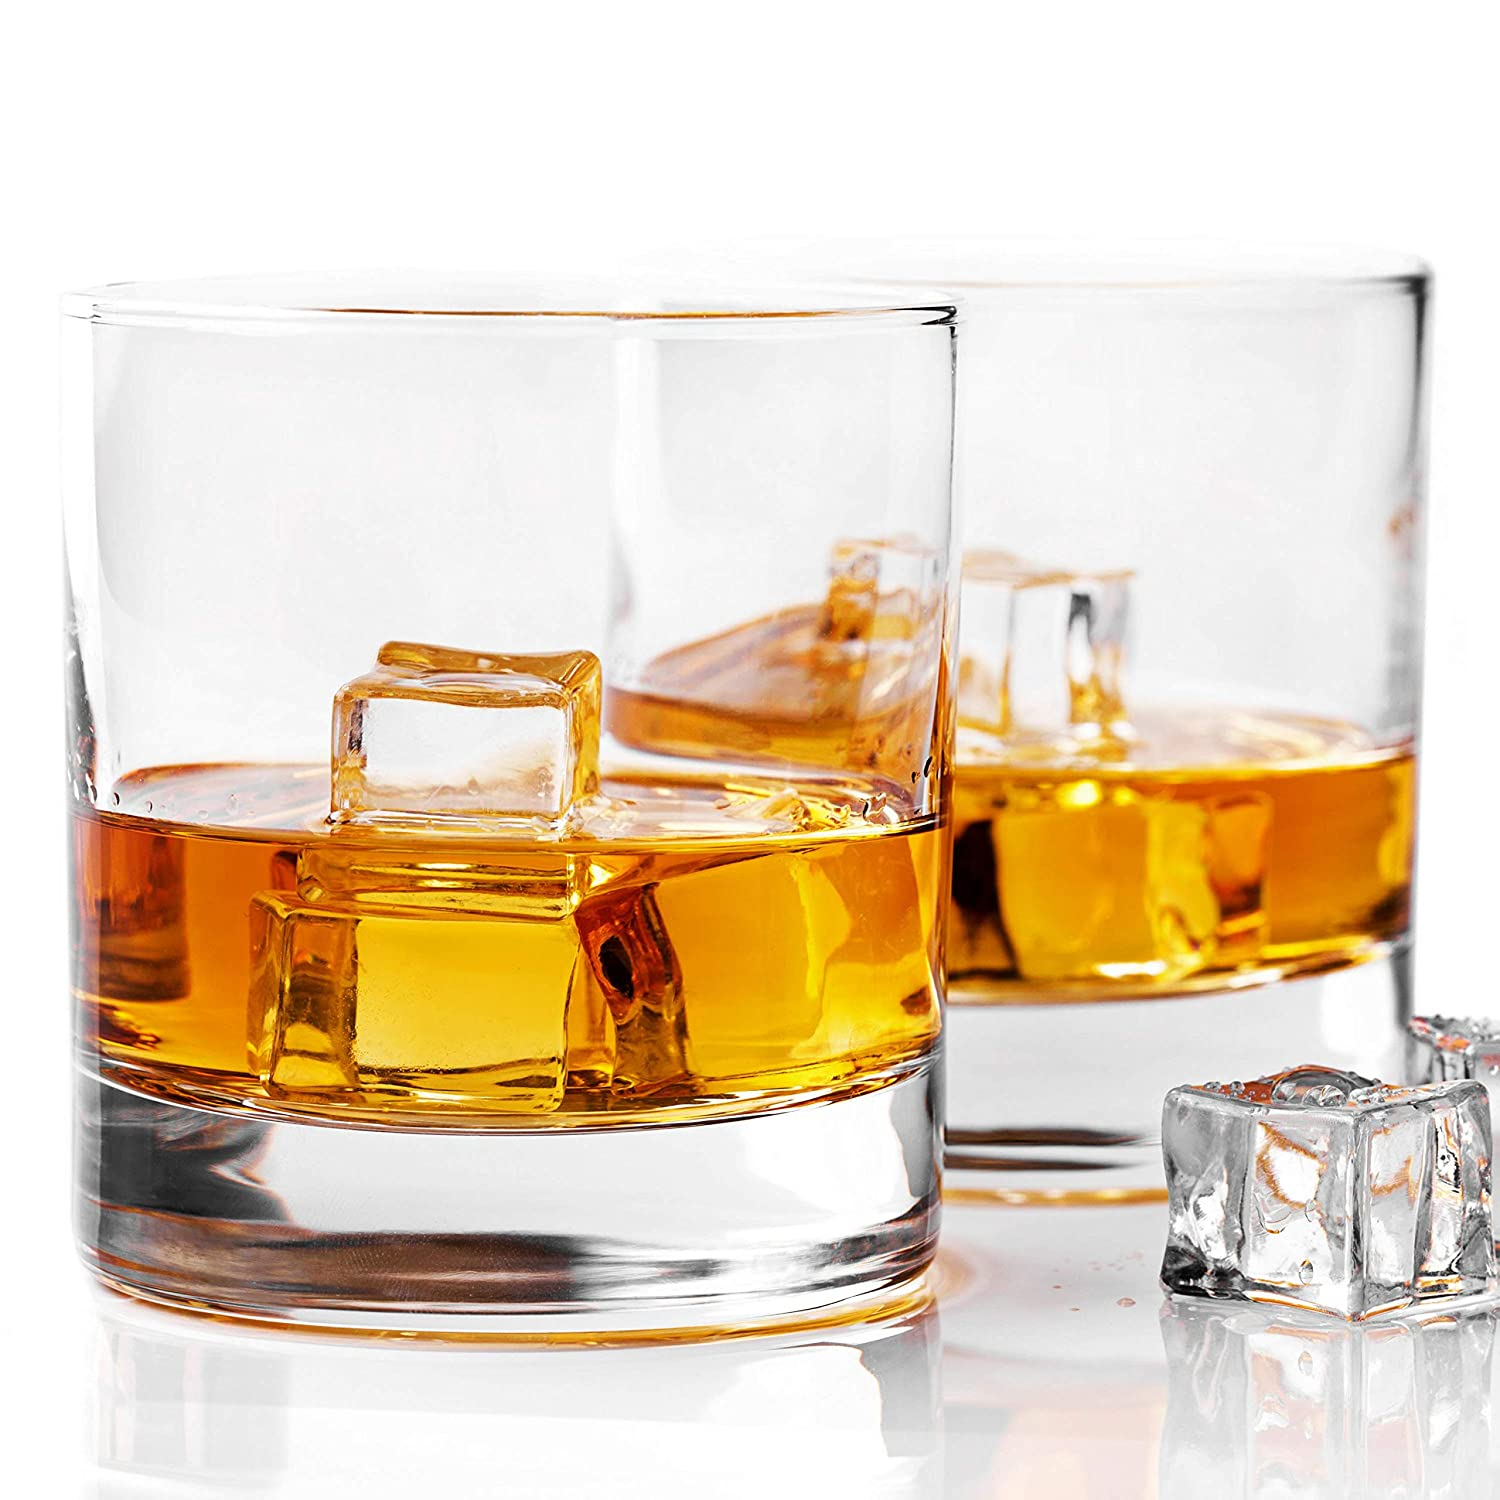 Taylor'd Milestones Whiskey Glass, Premium 10 oz Scotch Glasses, Set of 2 Rocks Style Glassware for Bourbon and Old Fashioned Cocktails Islande